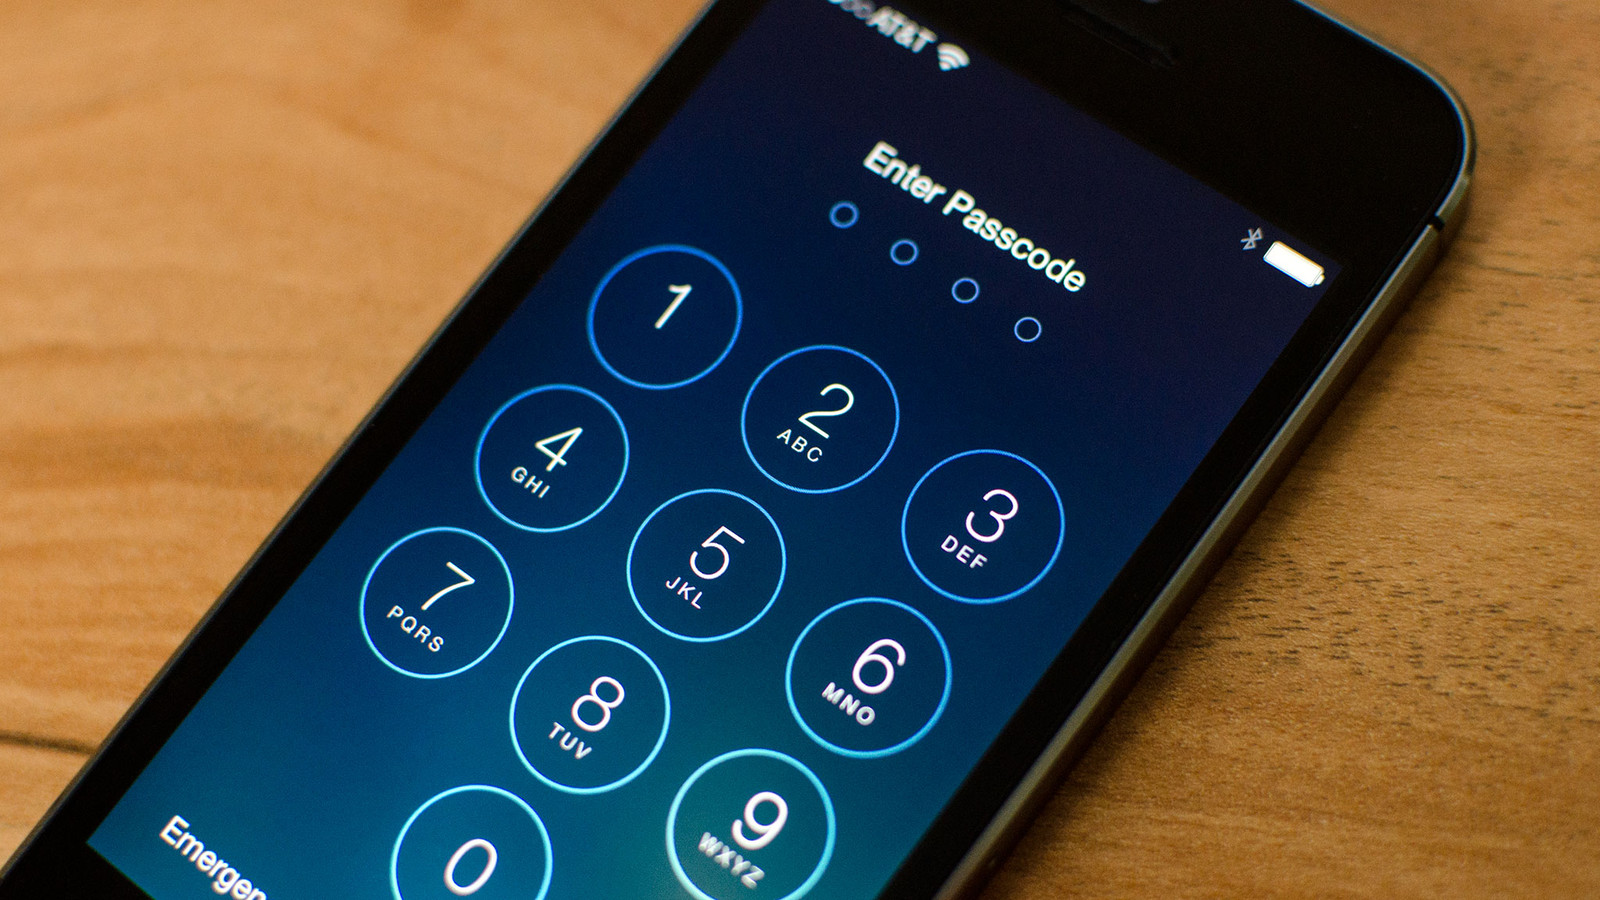 How to find the owner of a lost or stolen iPhone